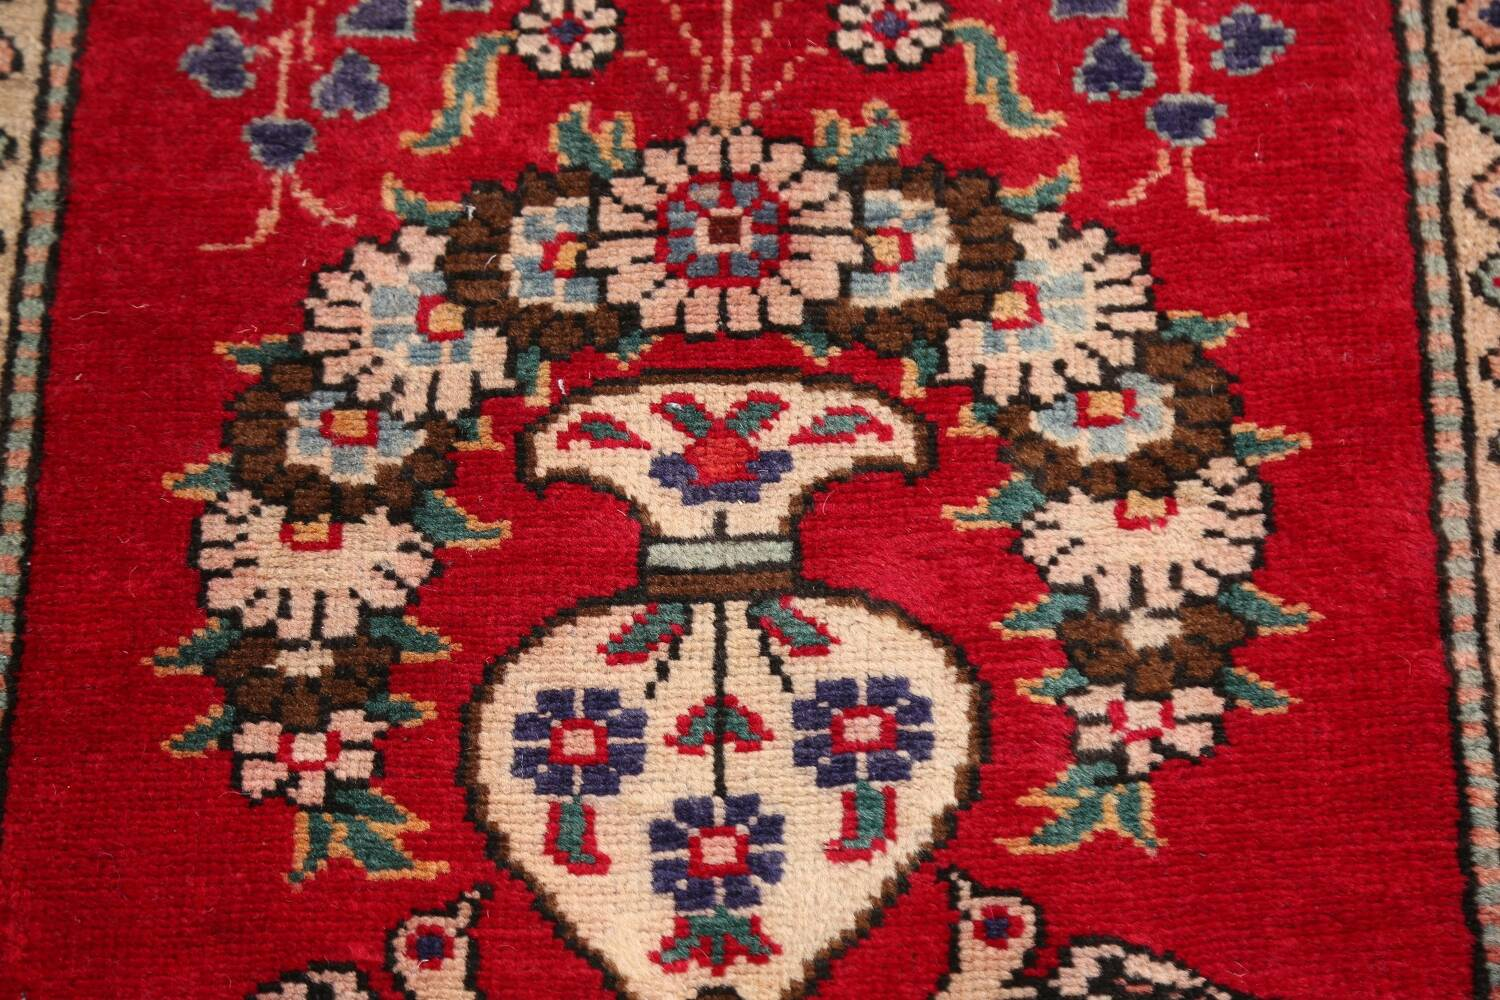 Animal Pictorial Red Tabriz Persian Area Rug 2x2 image 4